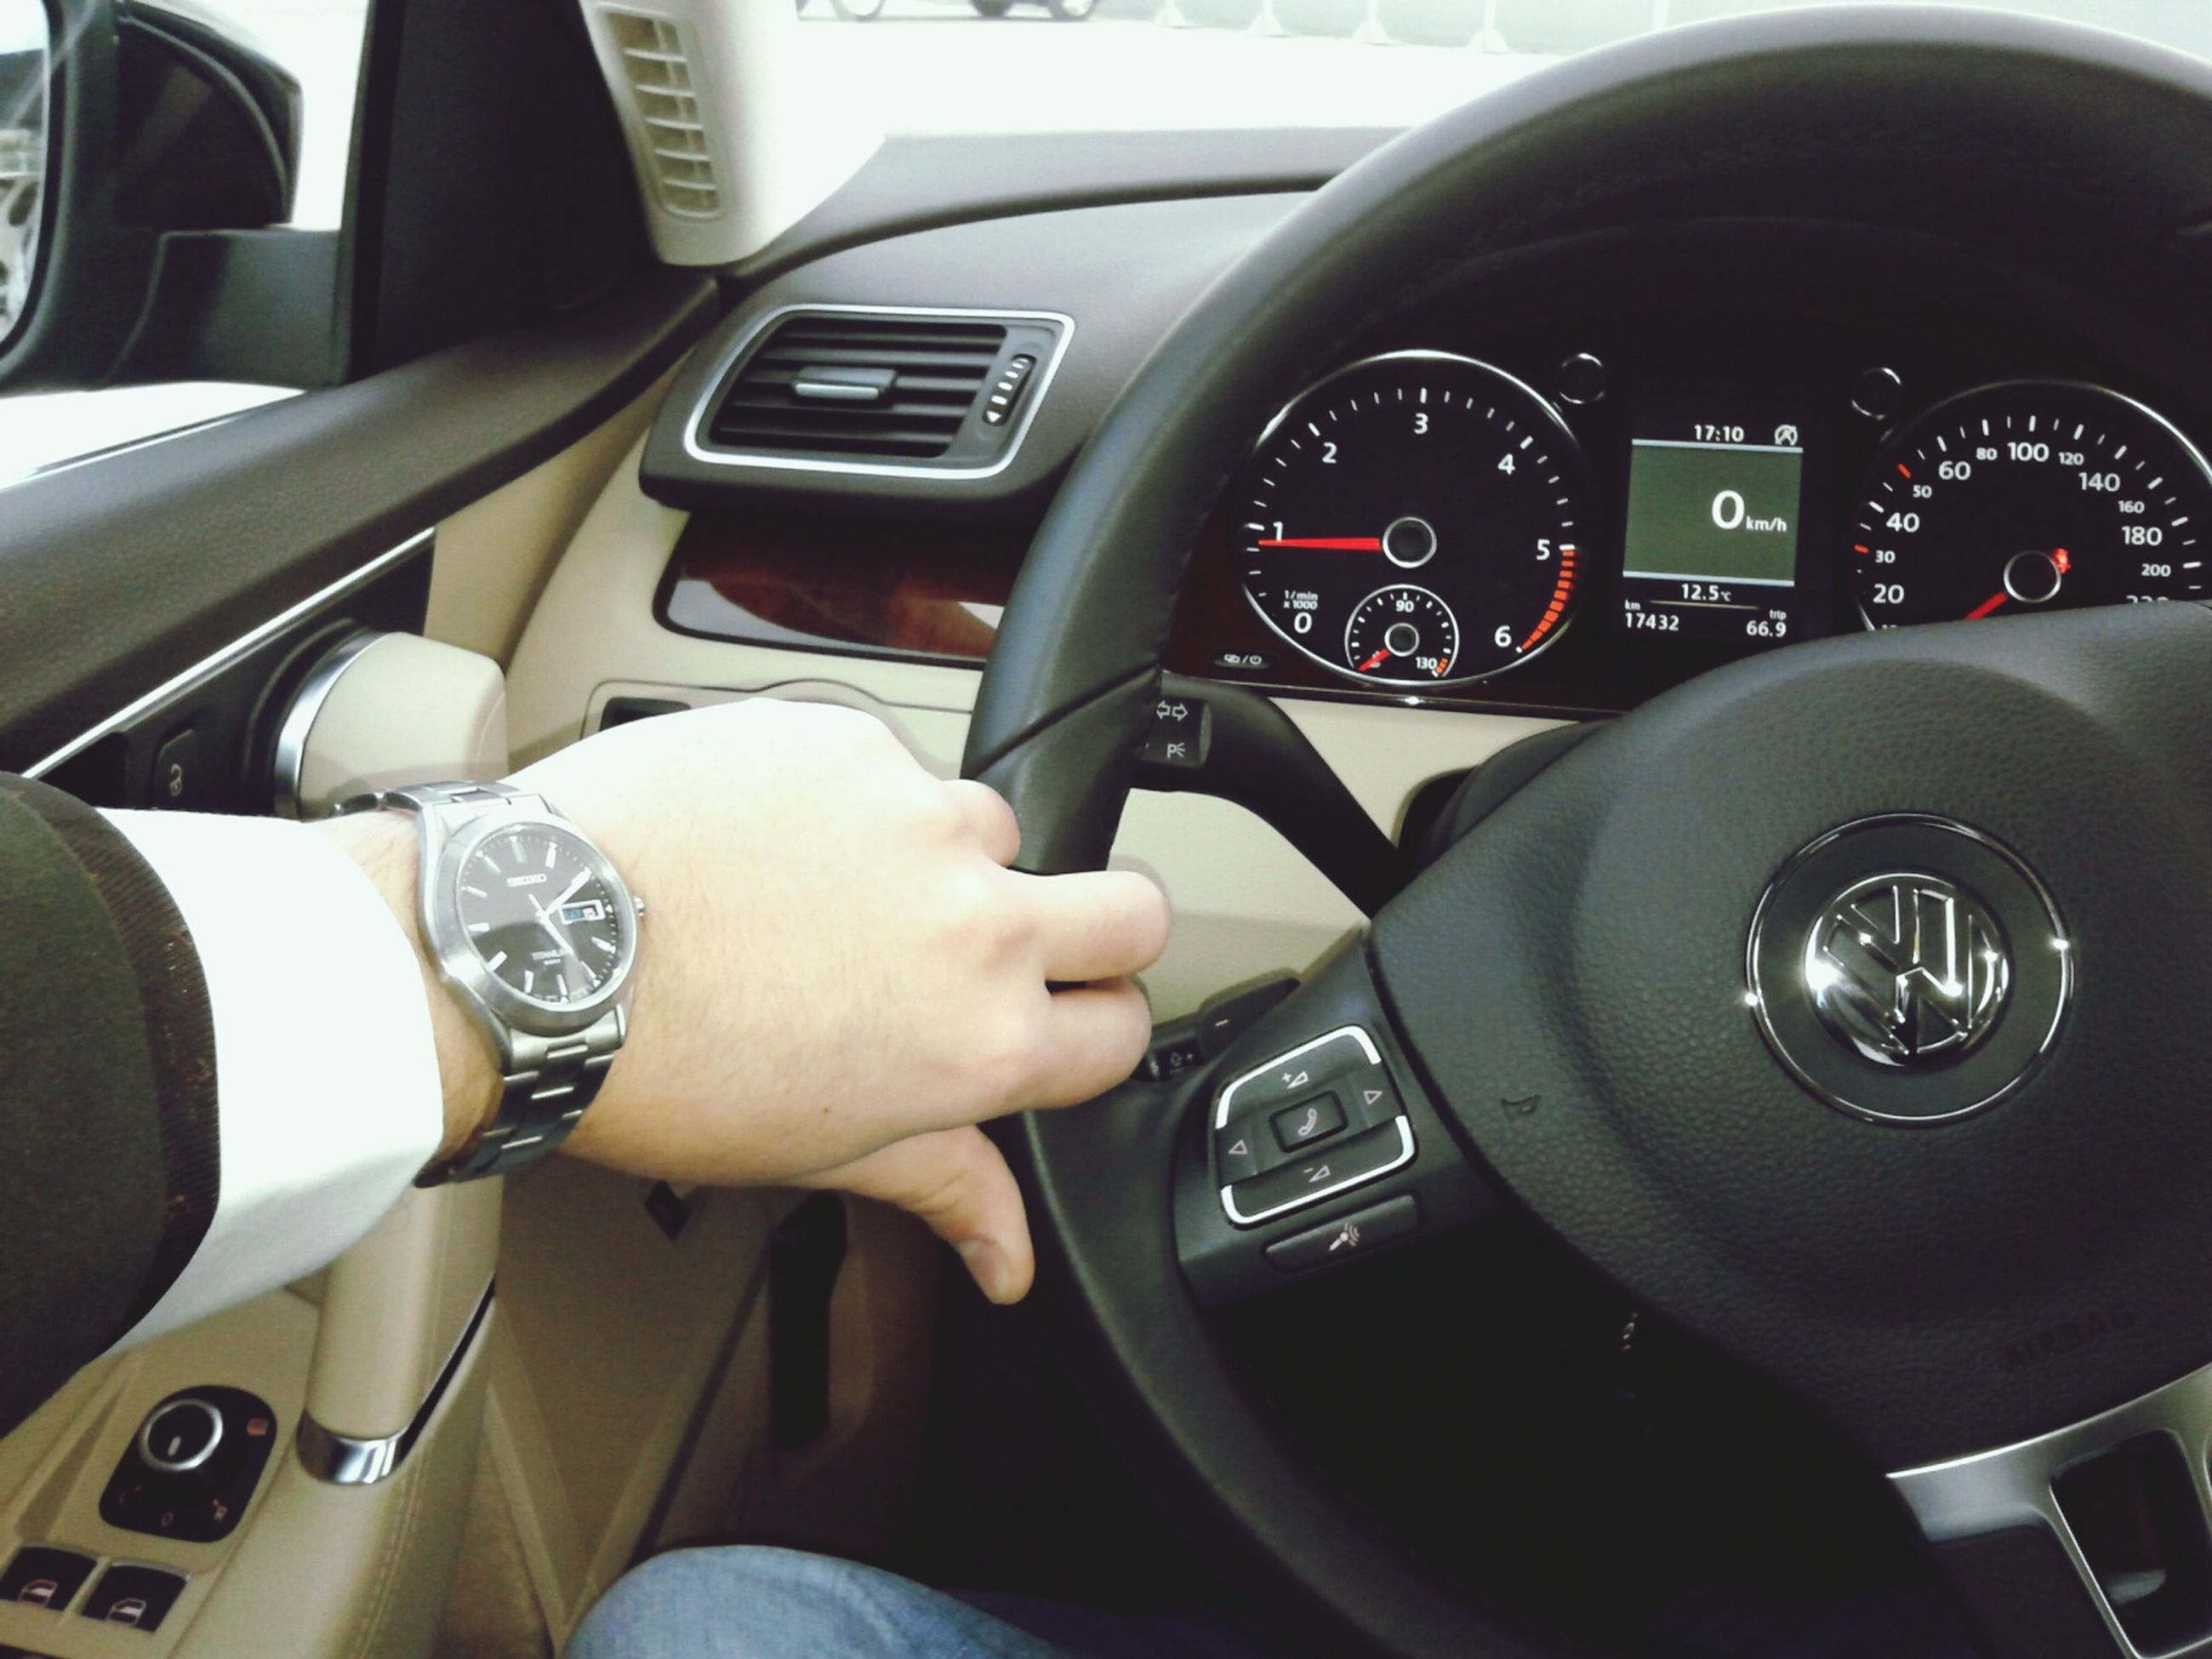 transportation, mode of transport, car, land vehicle, vehicle interior, car interior, part of, travel, steering wheel, technology, dashboard, cropped, person, driving, windshield, photography themes, close-up, journey